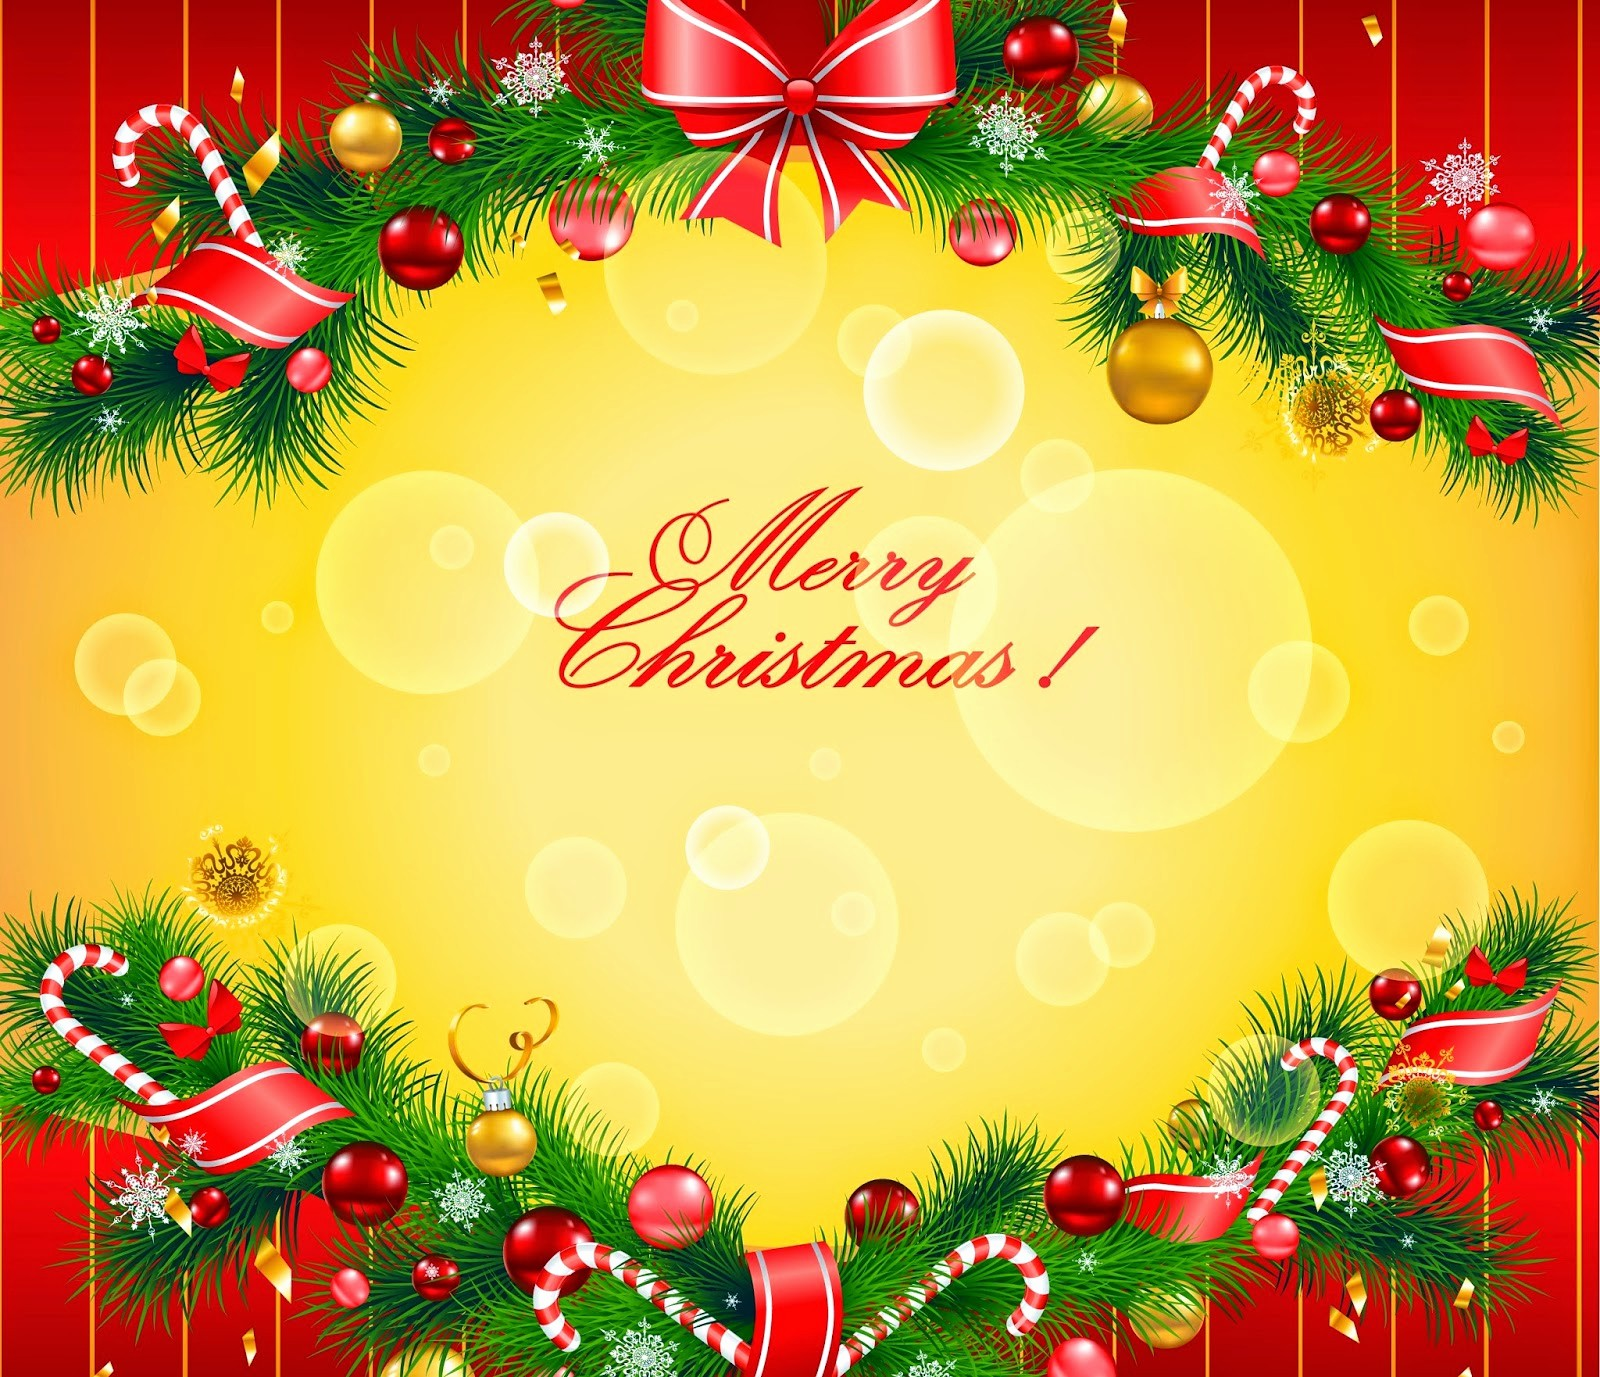 Greeting Cards Templates Free Downloads Luxury Merry Christmas Greeting Card Hd Images Free